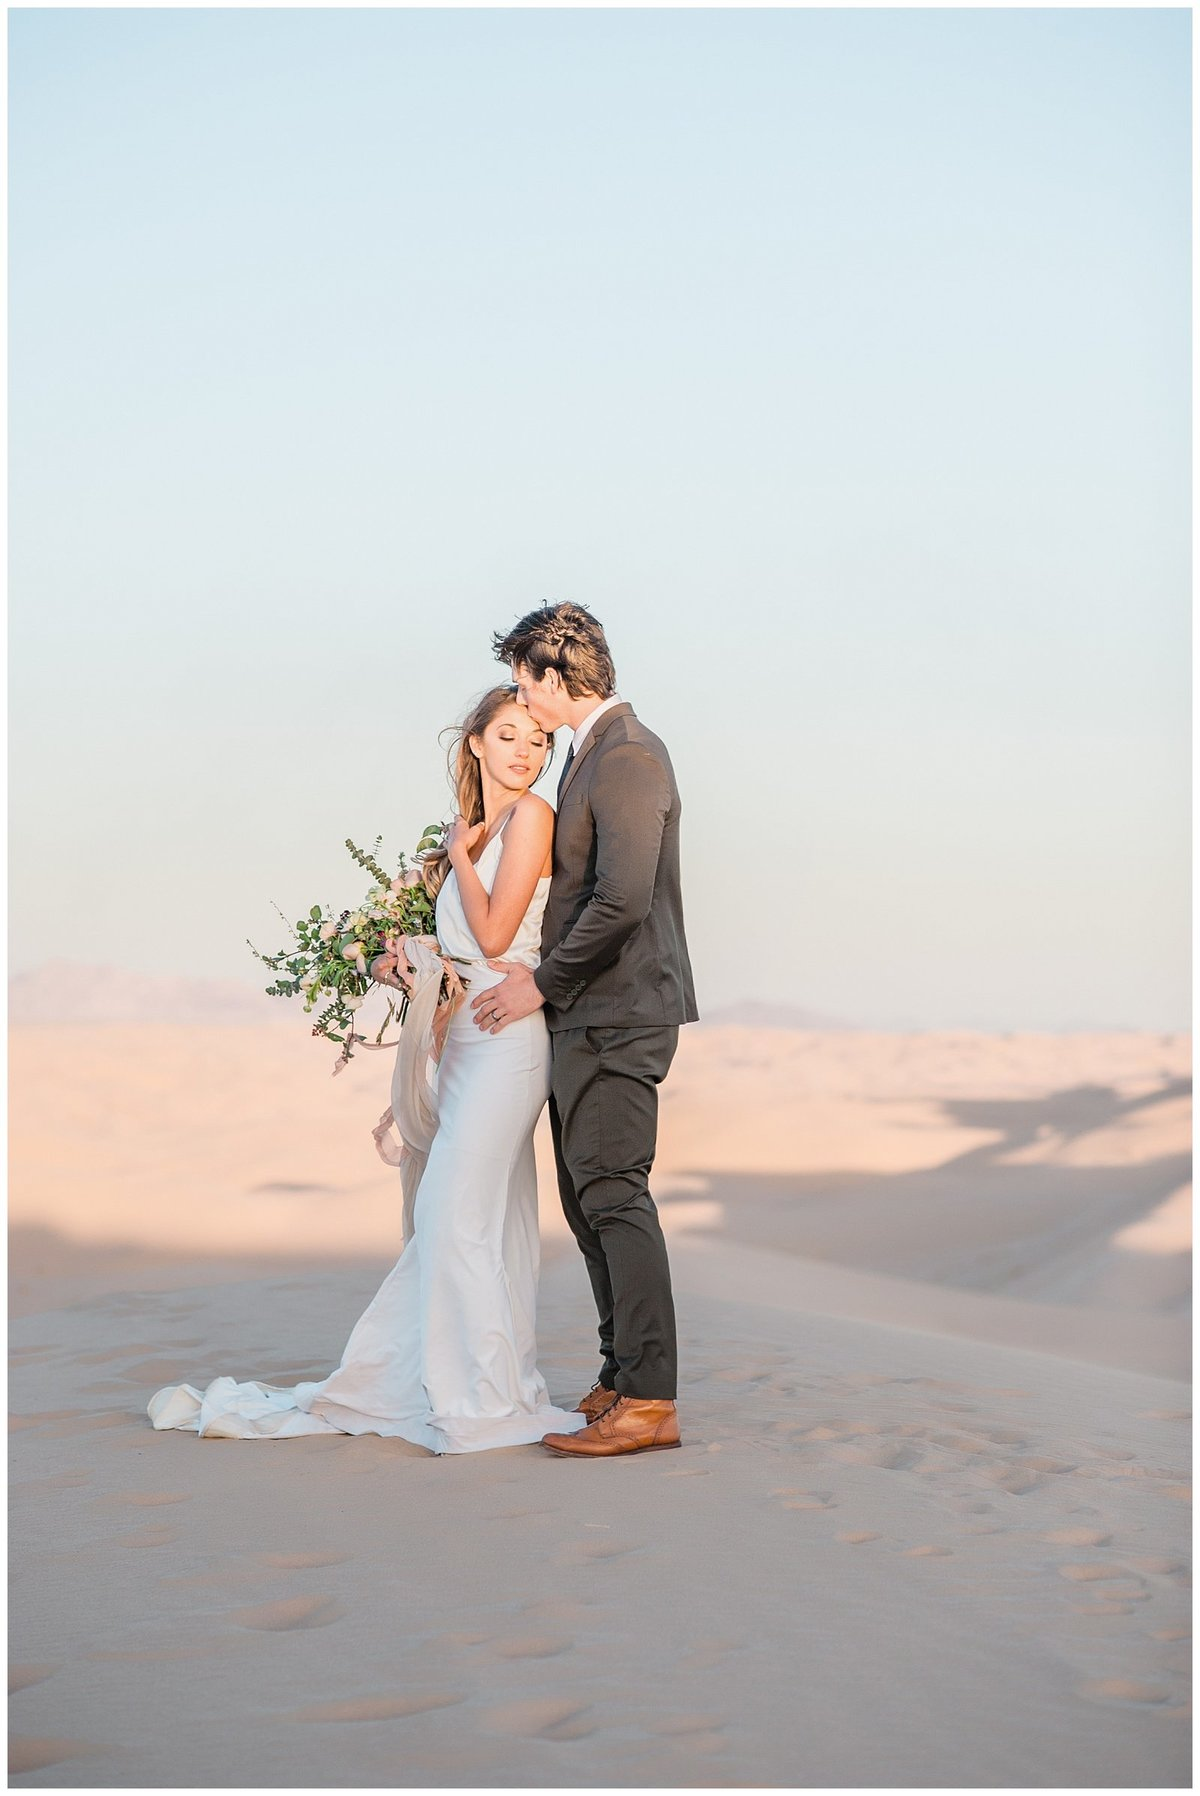 Glamis Desert Bohemian Wedding Styled elopement southern california sand dunes photo031